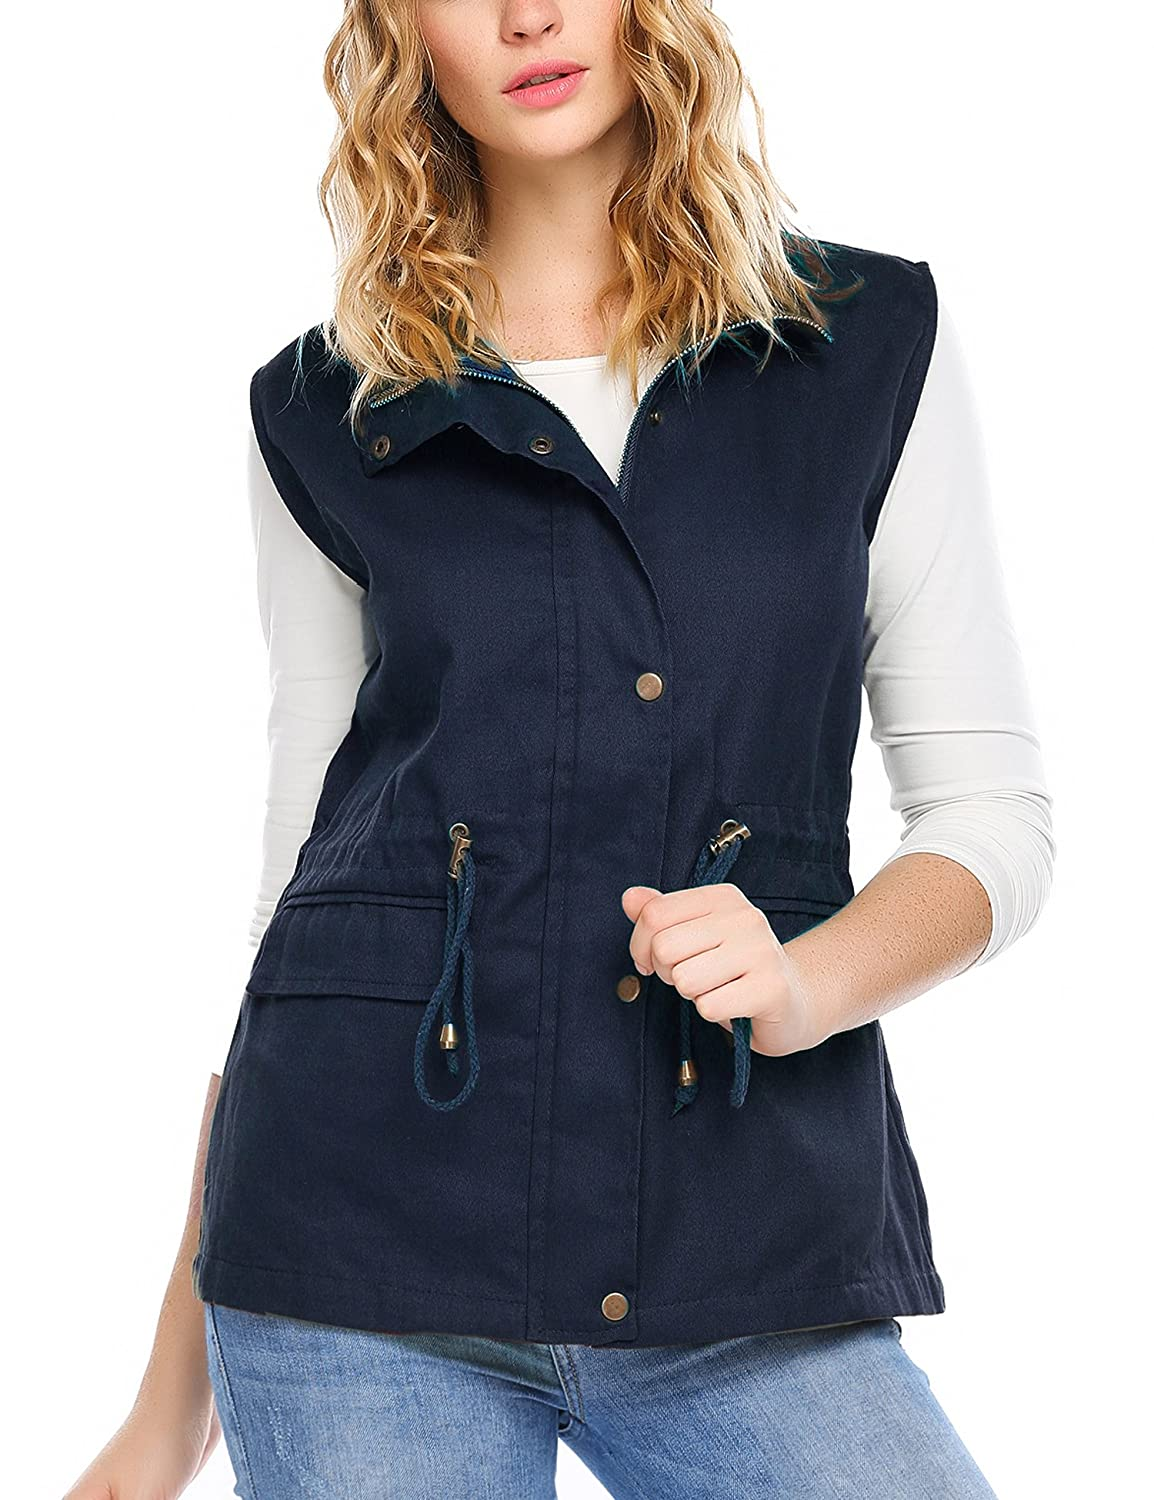 Zeagoo Womens Lightweight Sleeveless Military Safari Utililty Anorak Vest Navy Blue *ZTH022215_NB_L